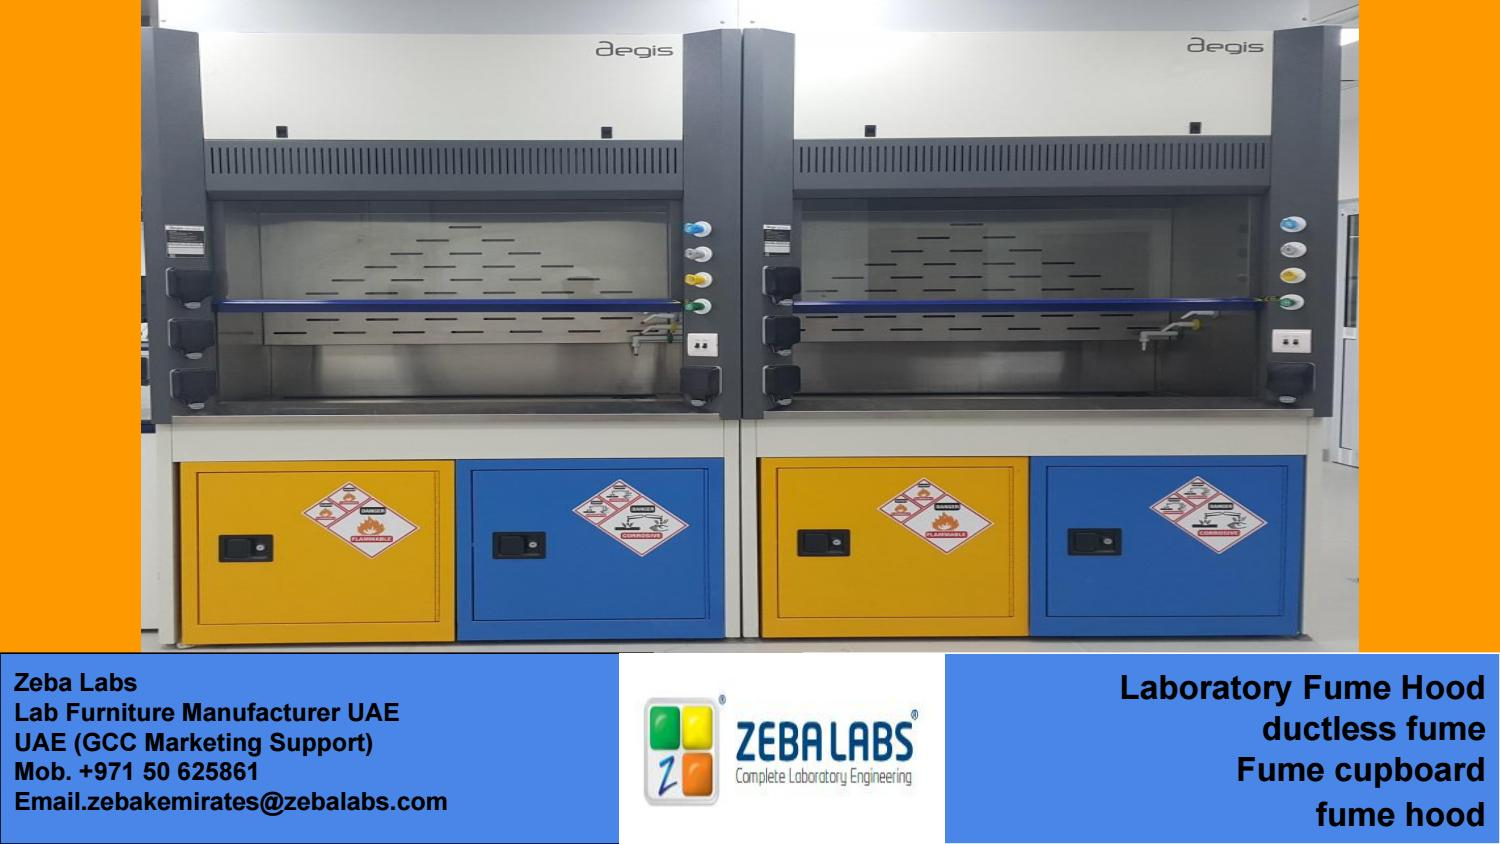 ductless fume - Ductless Fume Hoods-Erlab: Ductless Fume